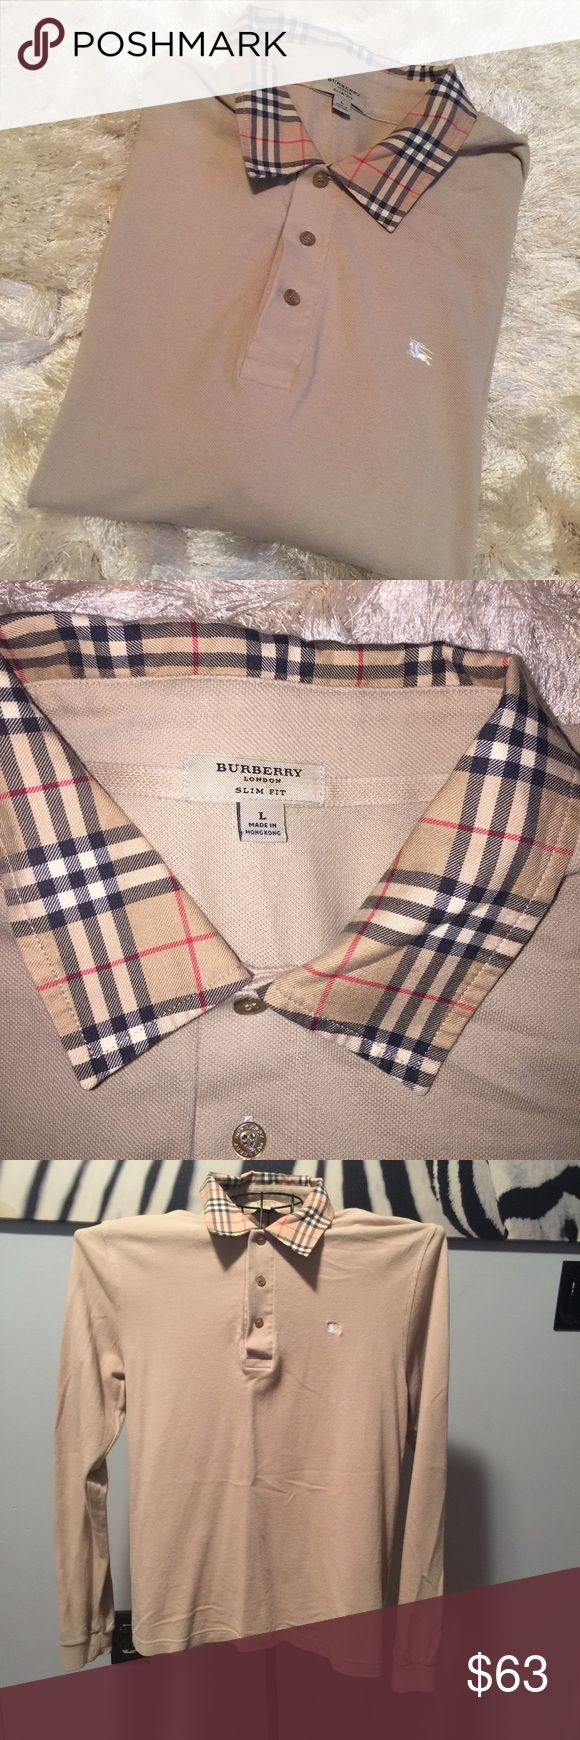 •Burberry• Men's Long Sleeve Polo Authentic - excellent condition. No stains/tears. Smoke free home.   Slim fit - men's large   No trades/holds Burberry Shirts Polos